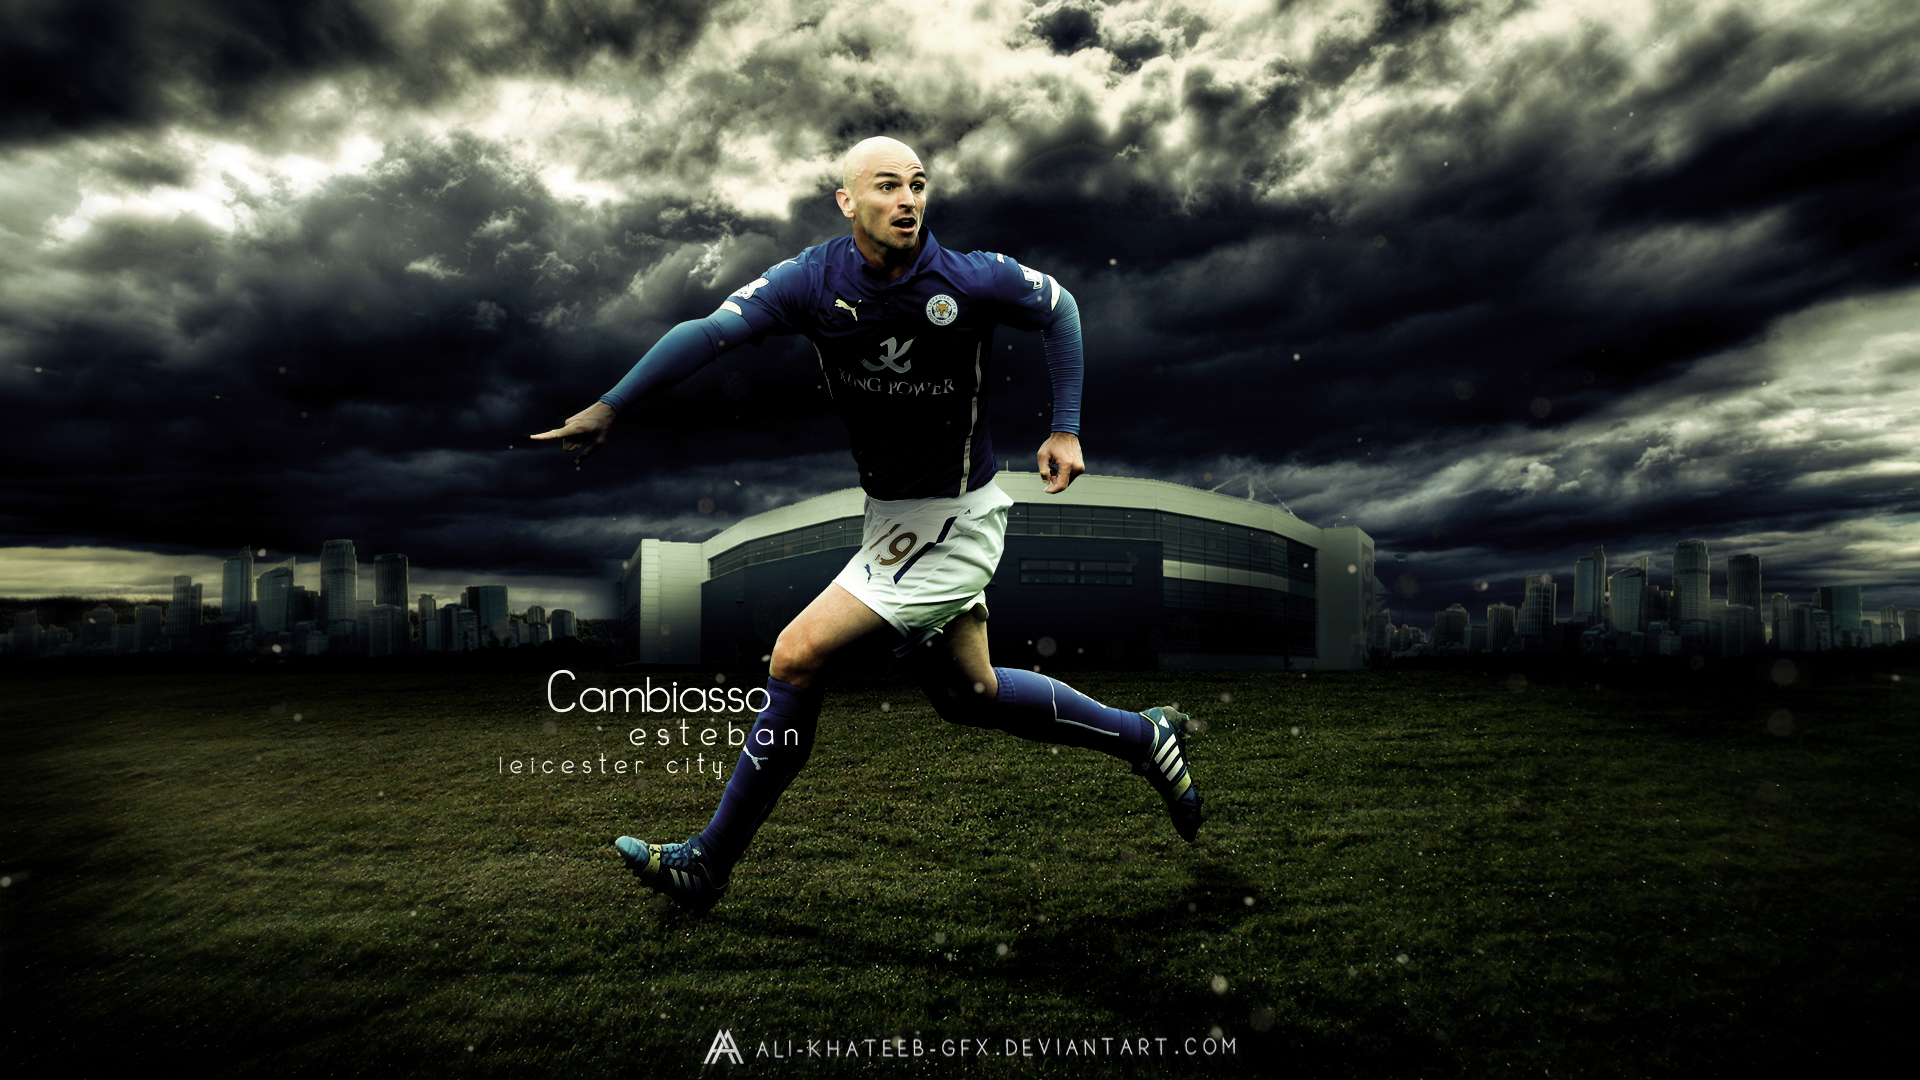 Cambiasso Leicester City Wallpaper